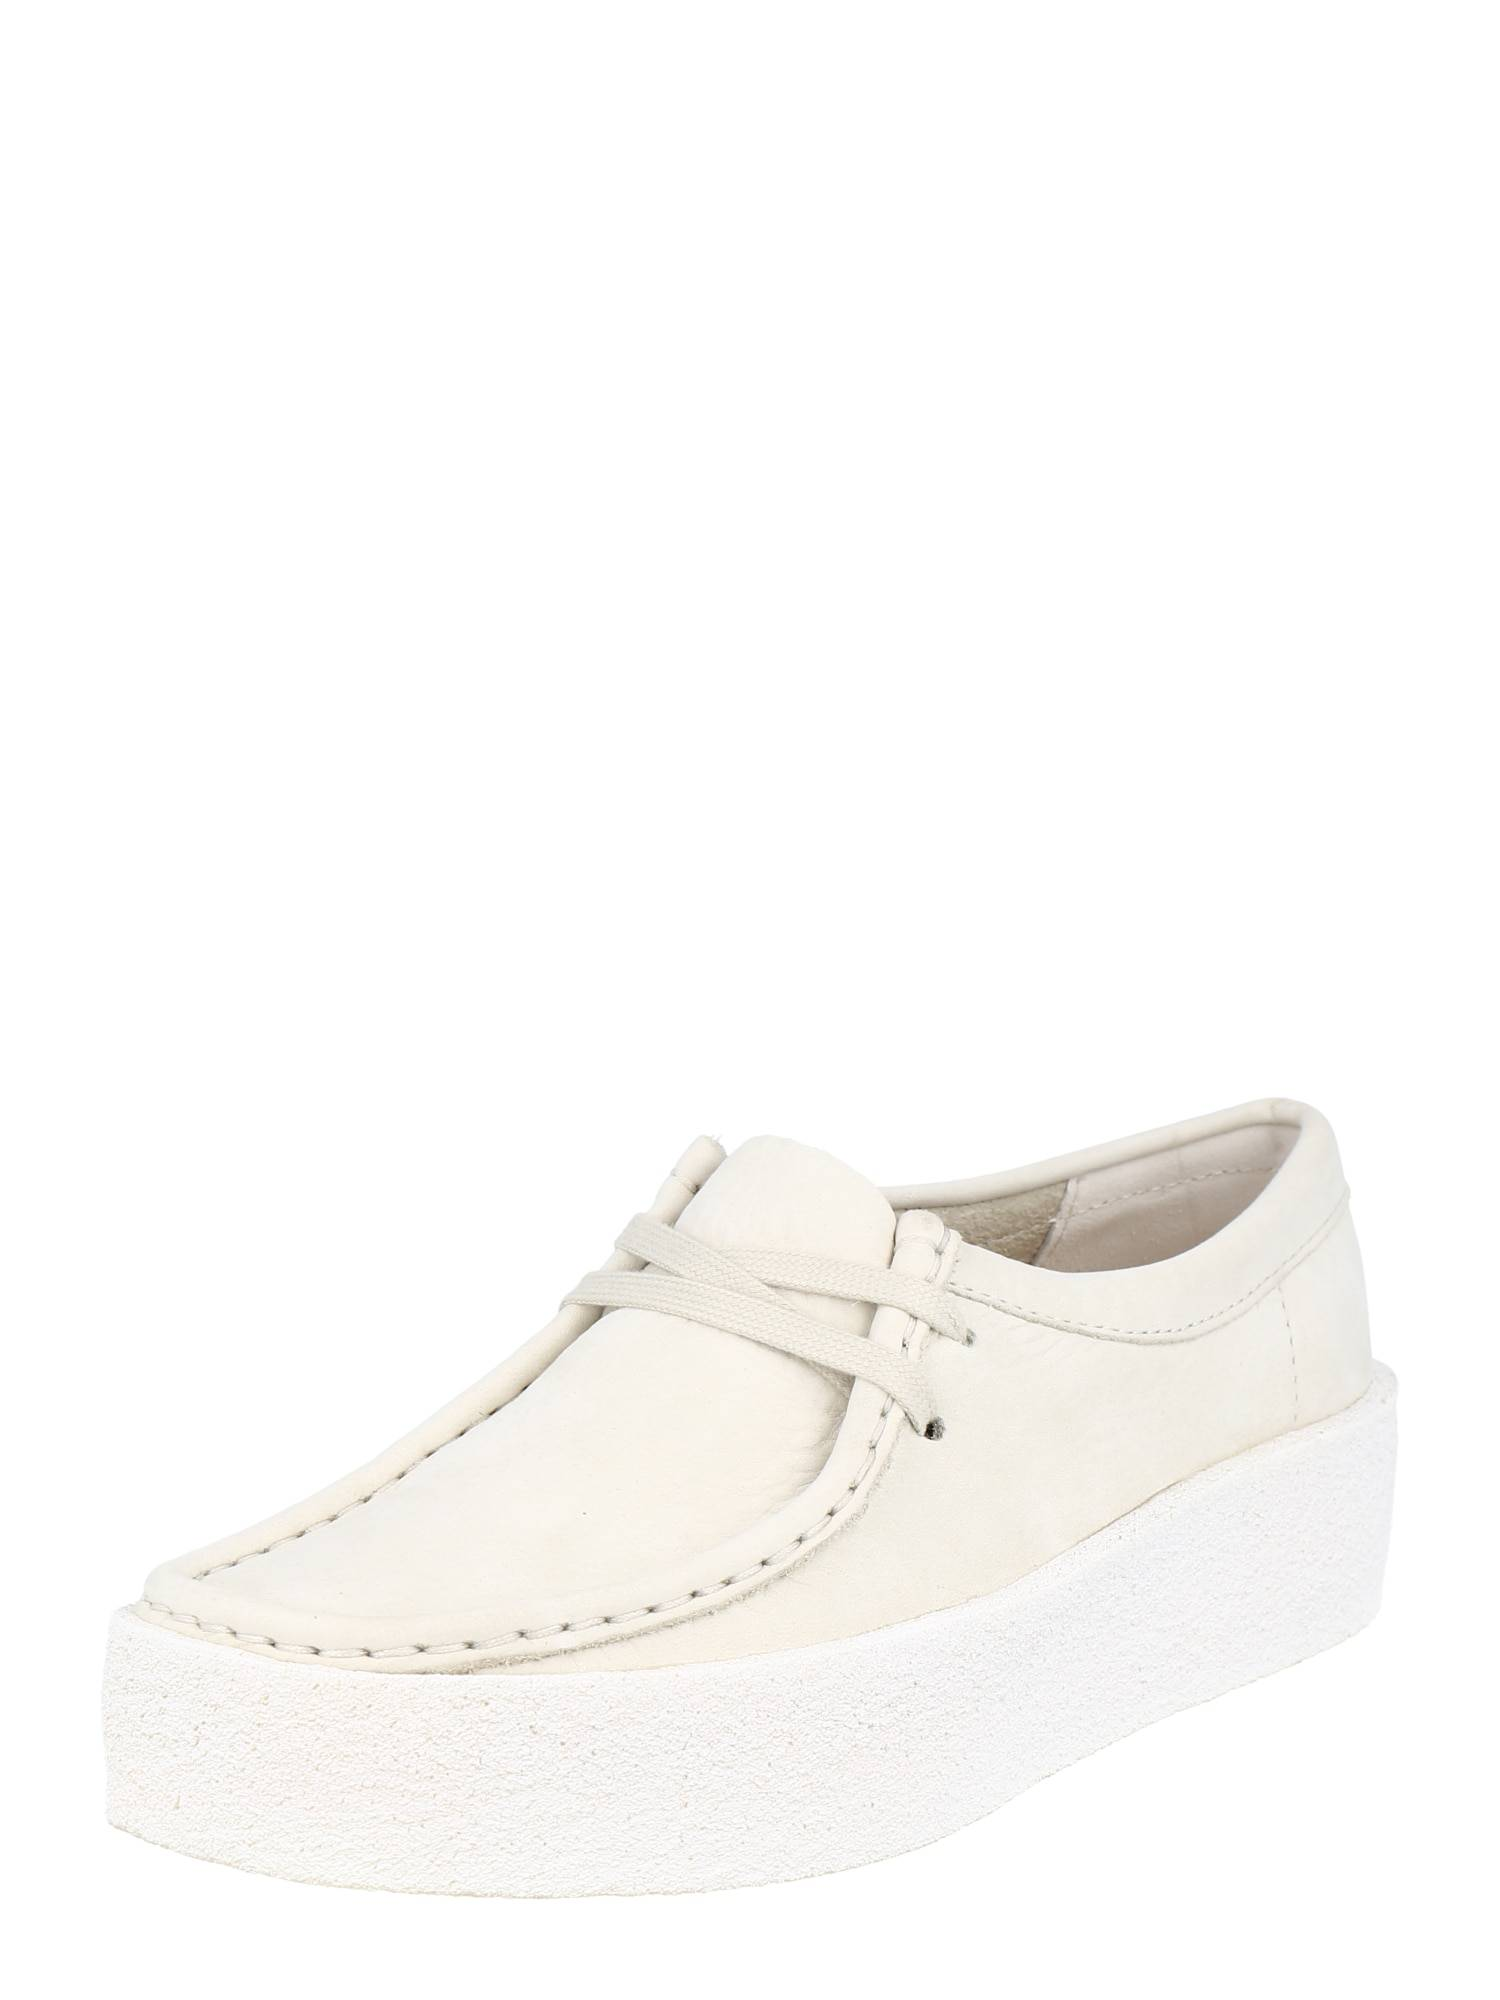 Clarks Originals Chaussure à lacets 'Wallabee Cup'  - Blanc - Taille: 4 - female